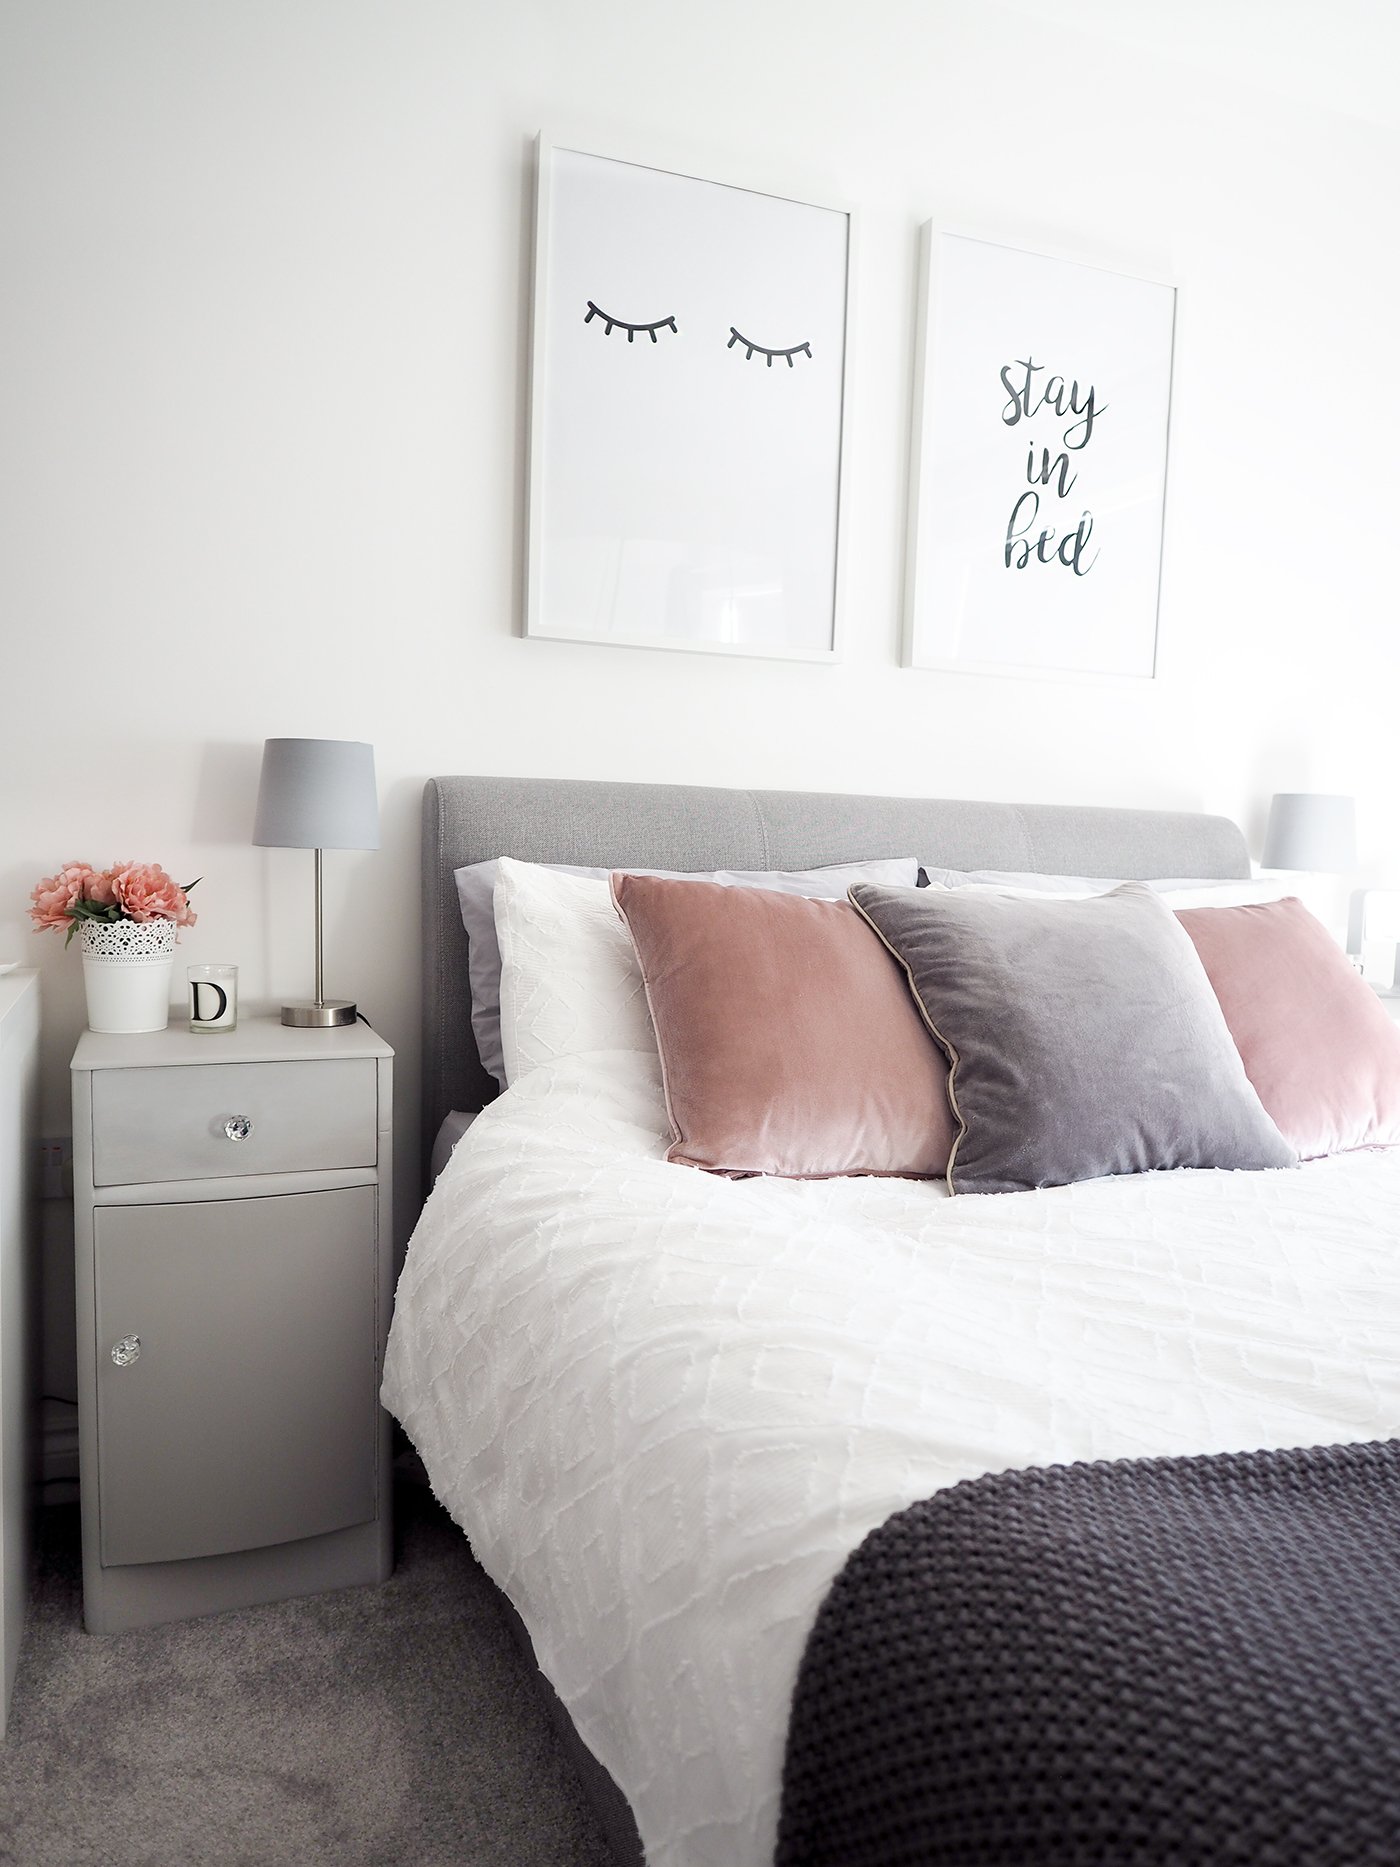 bedroom tour pink and grey bedroom decor bang on style 18815 | pink and grey bedroom decor 2